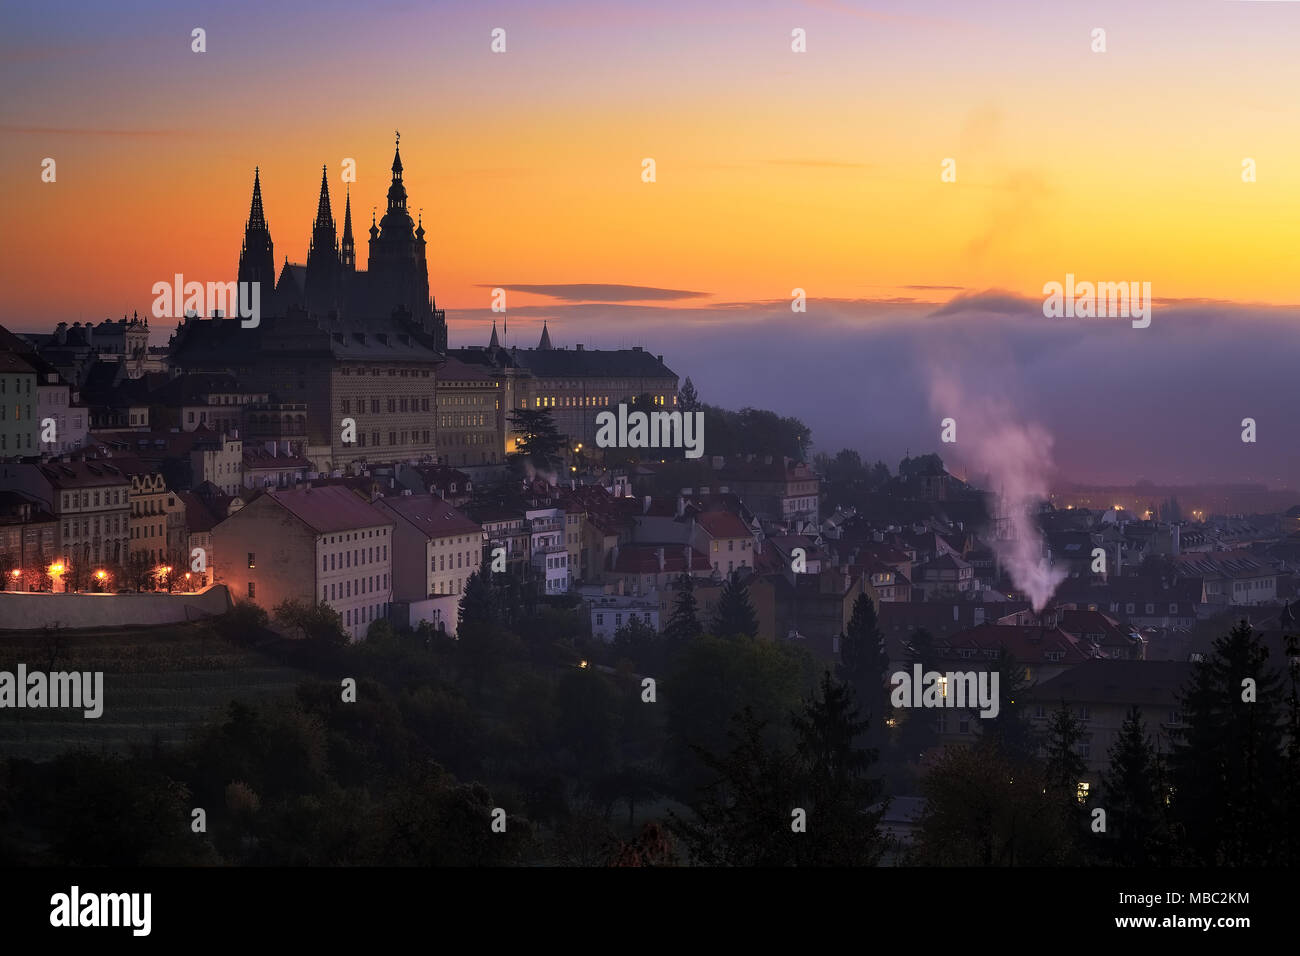 Morning view at Saint Vitus cathedral in Prague. Amazing sunrise foggy detail of gothic castle. Typical spring season city in Czech republic. - Stock Image